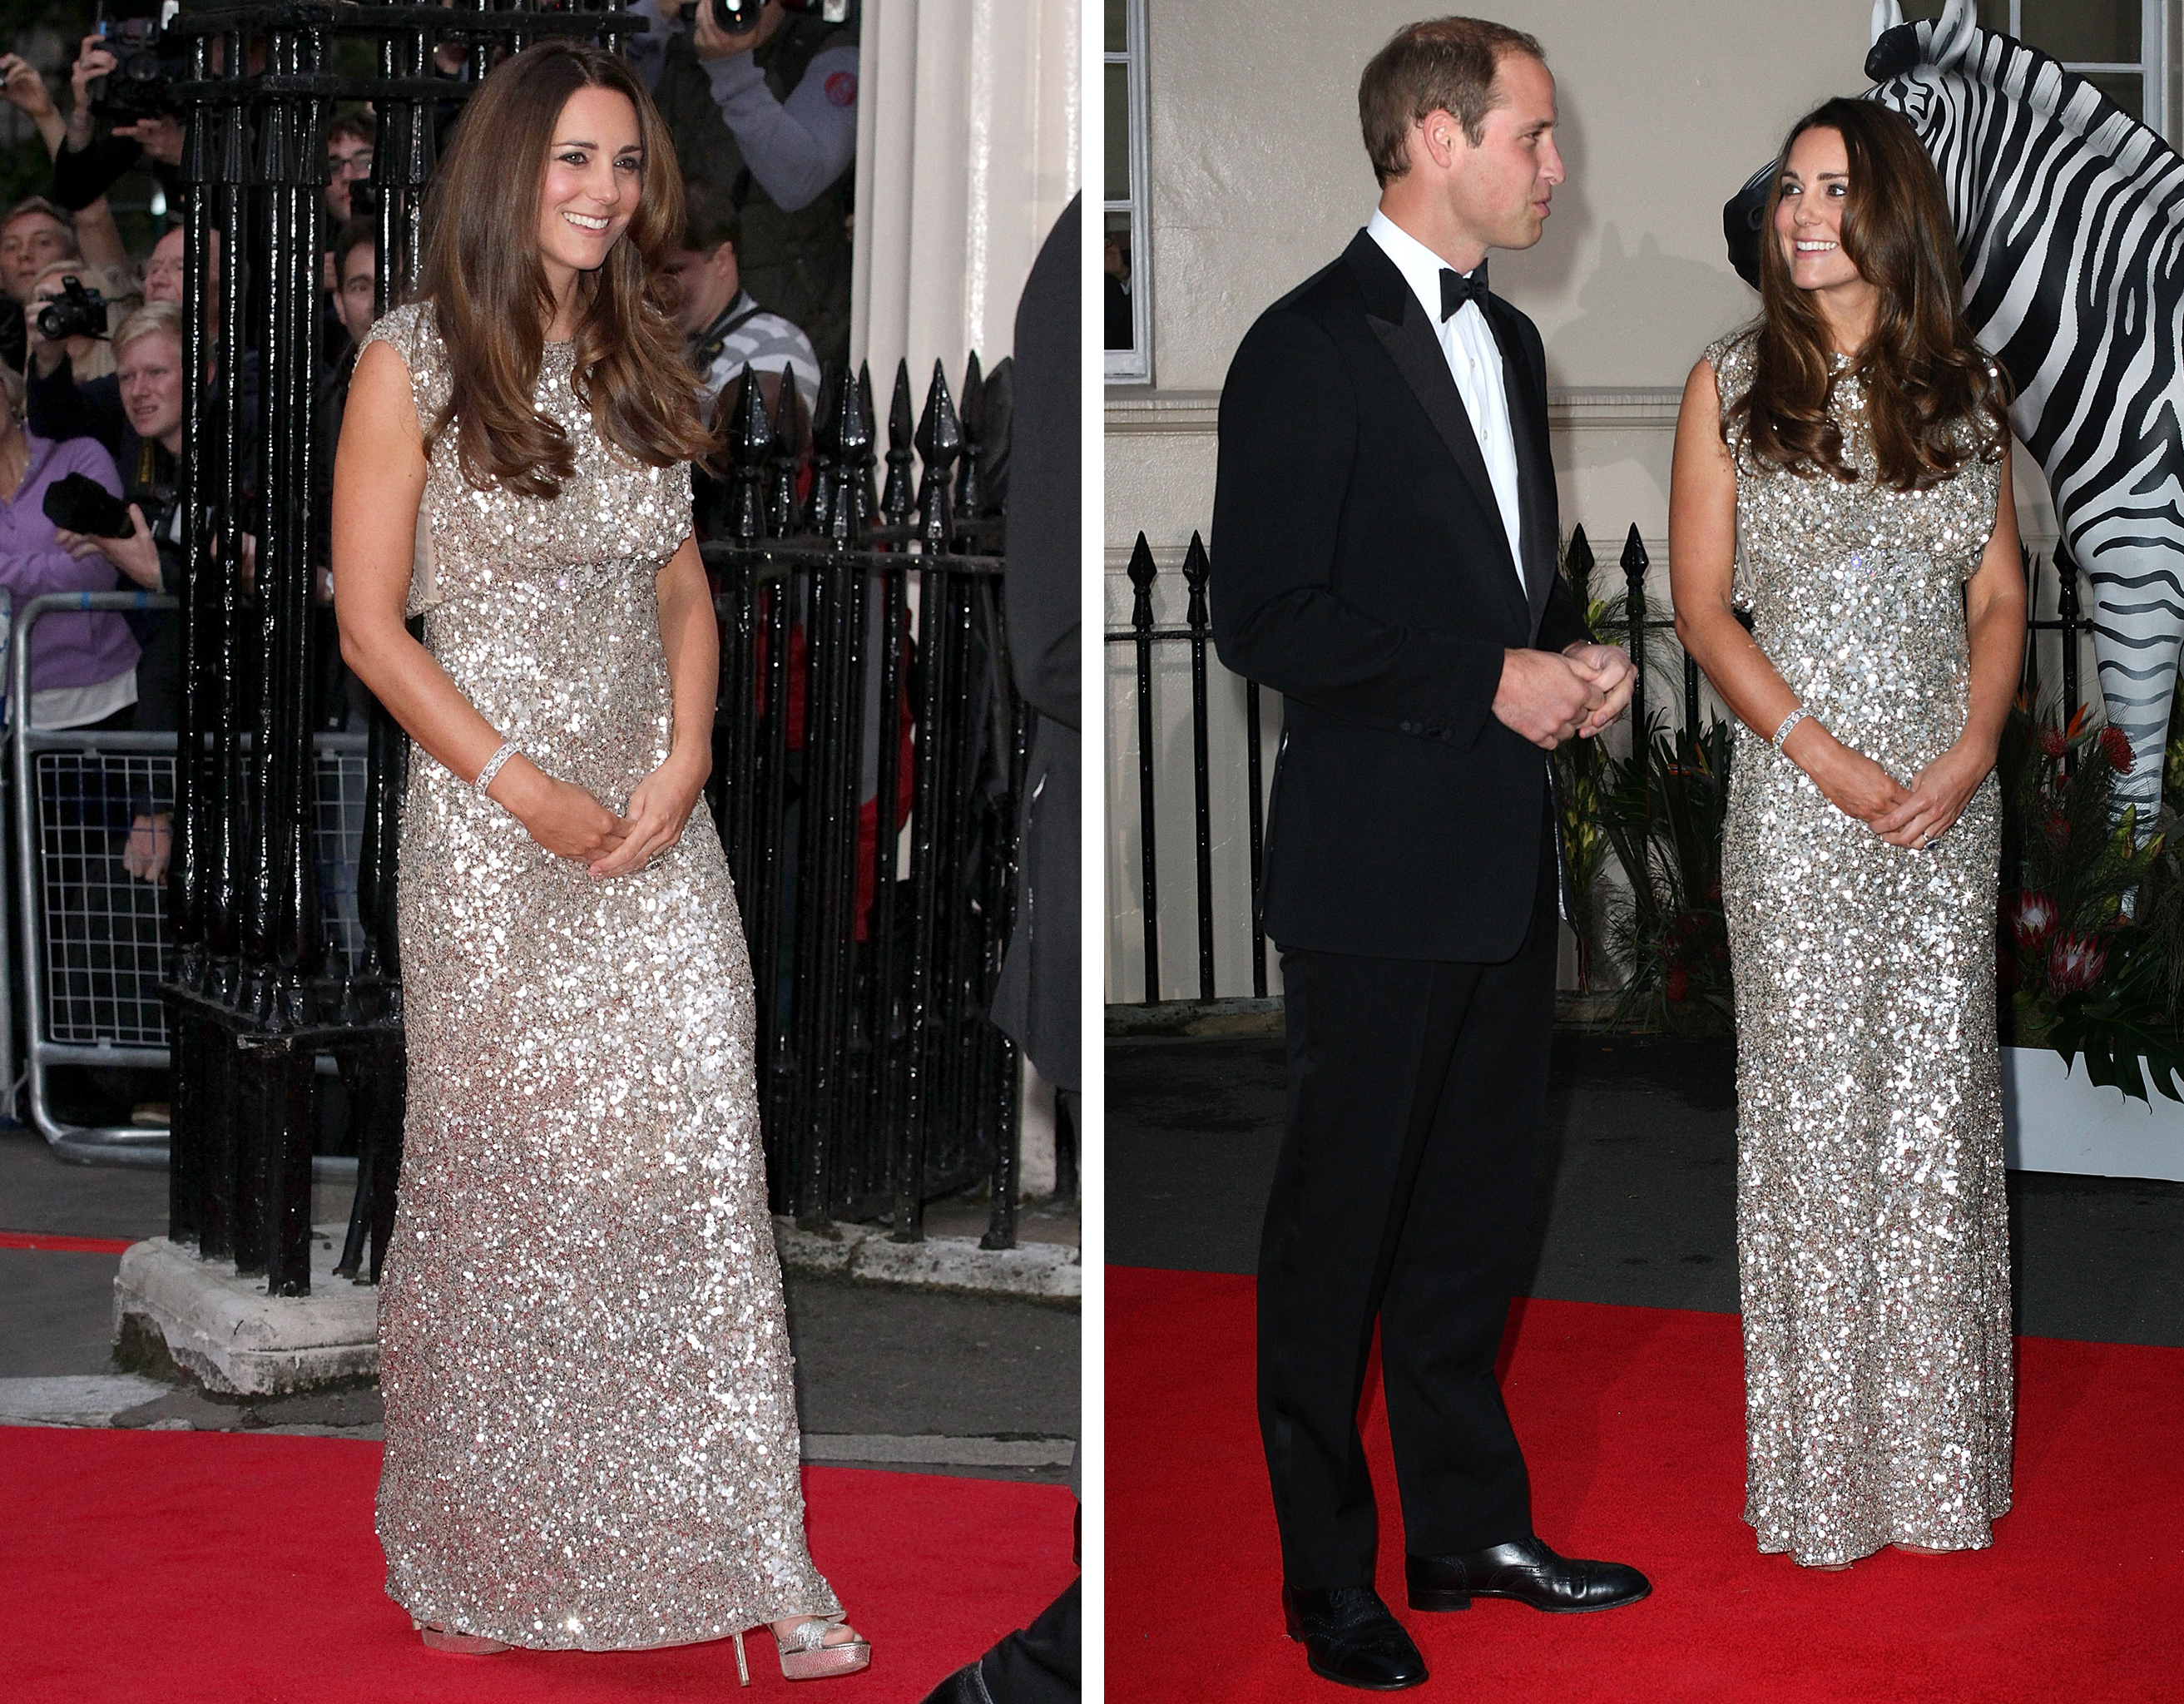 Kate Middleton and Prince William (Danny Martindale/WireImage)